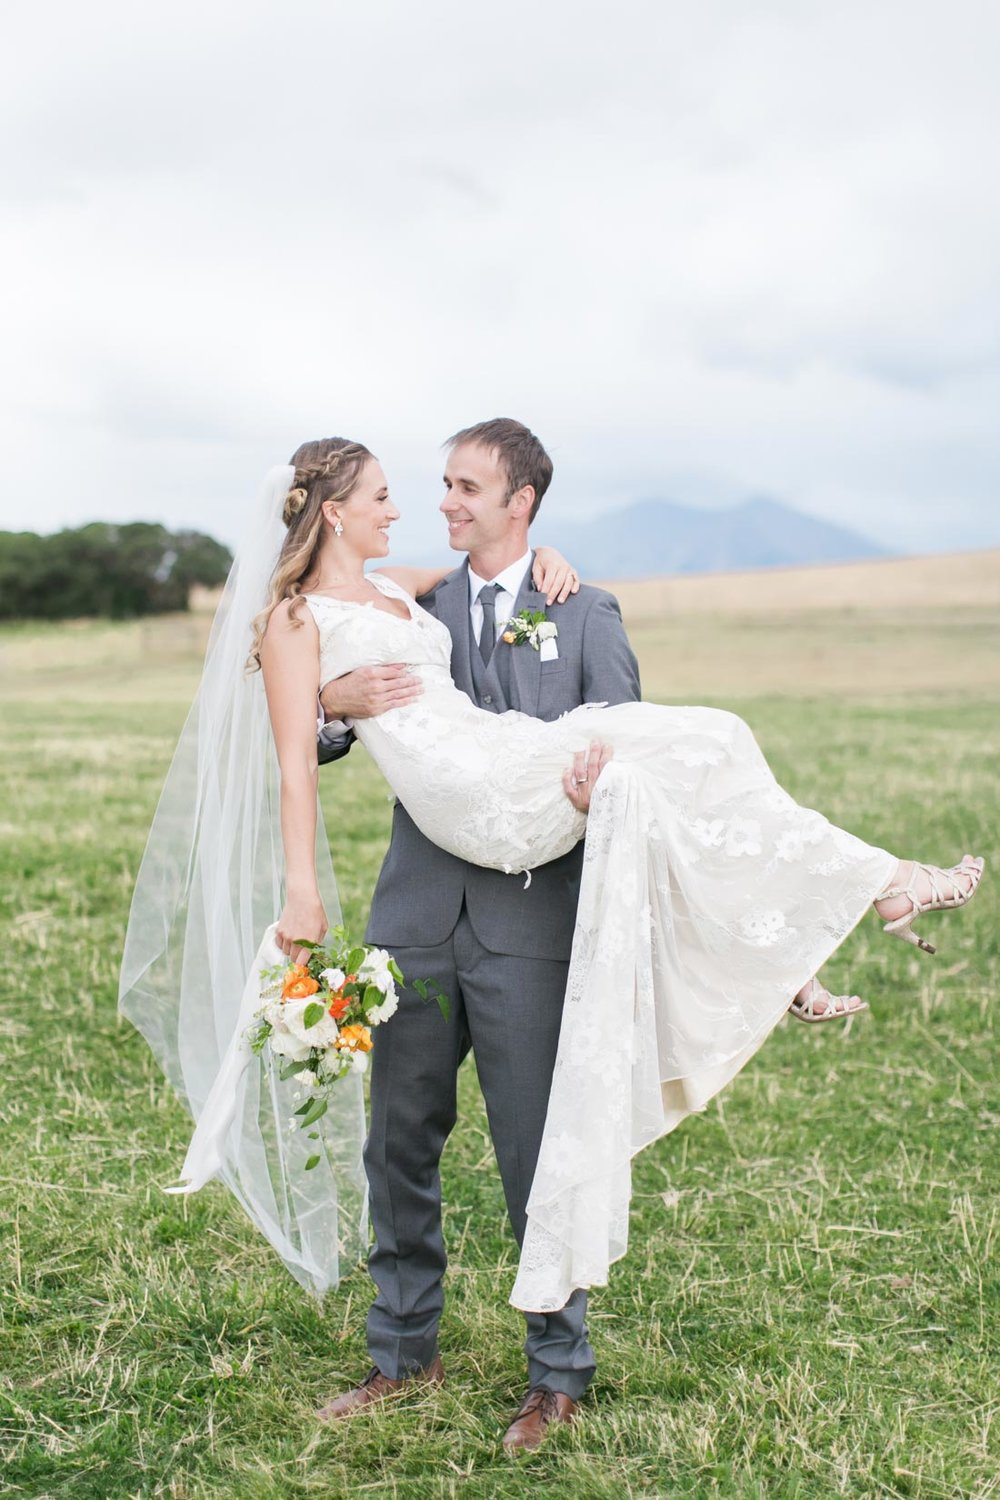 Megan_Zack_Cedar_Ridge_Ranch_Wedding_by_Connie_Whitlock_web_384.jpg